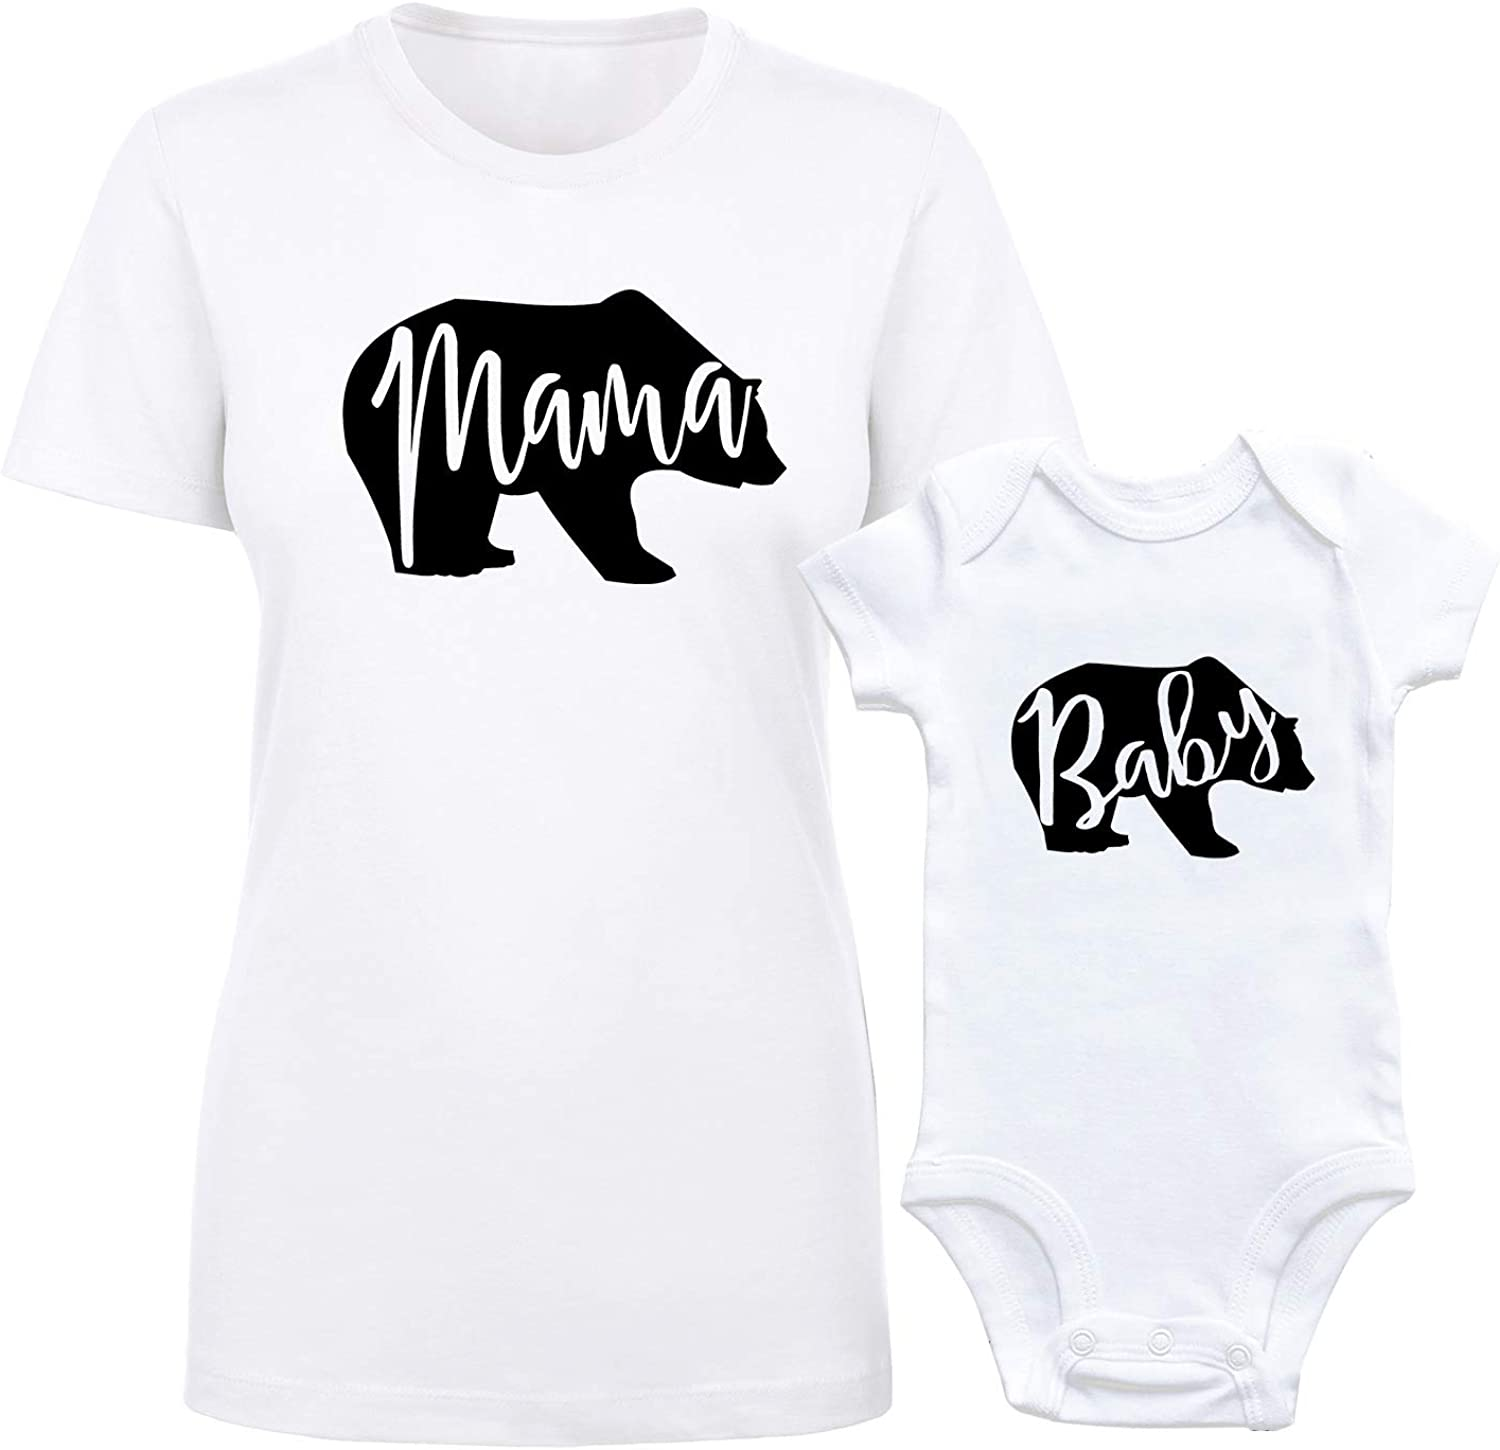 Mama Bear Babys Boys /& Girls Short Sleeve Romper Bodysuit Outfits and Tee